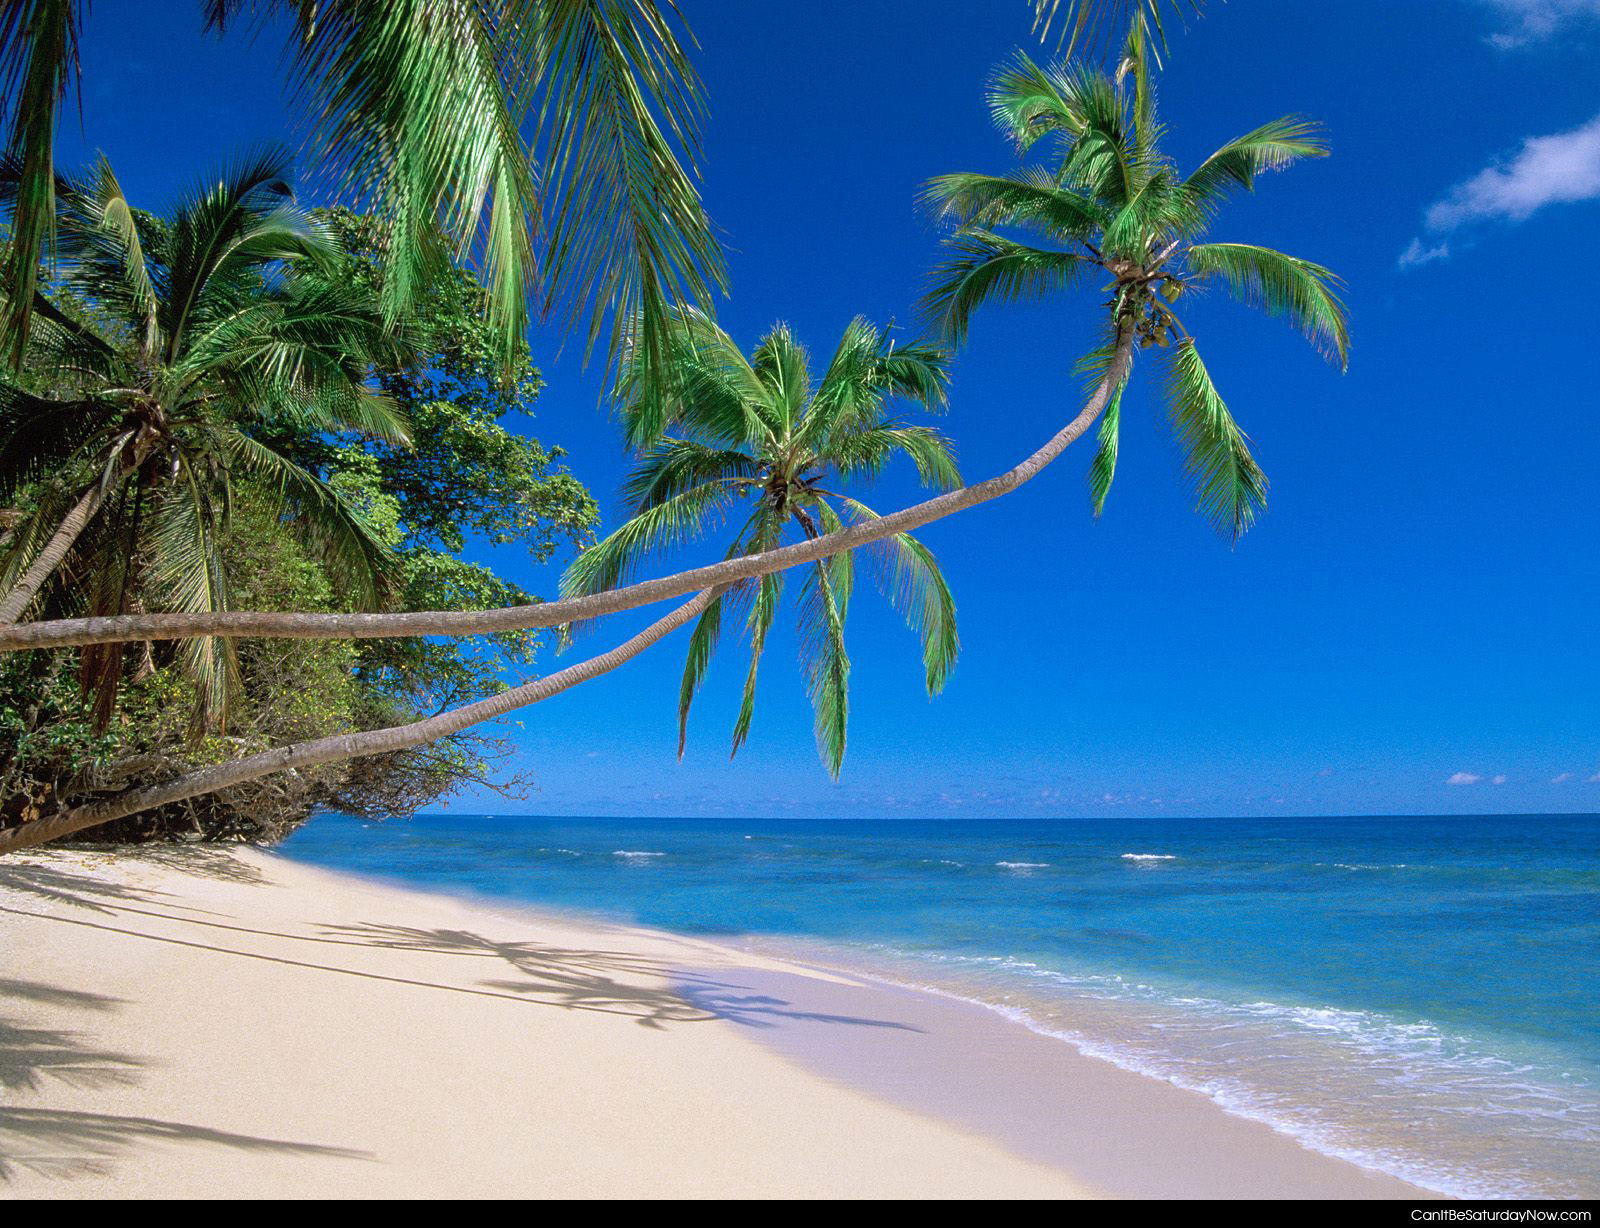 Can it be saturday now palm tree beach palm tree beach voltagebd Image collections